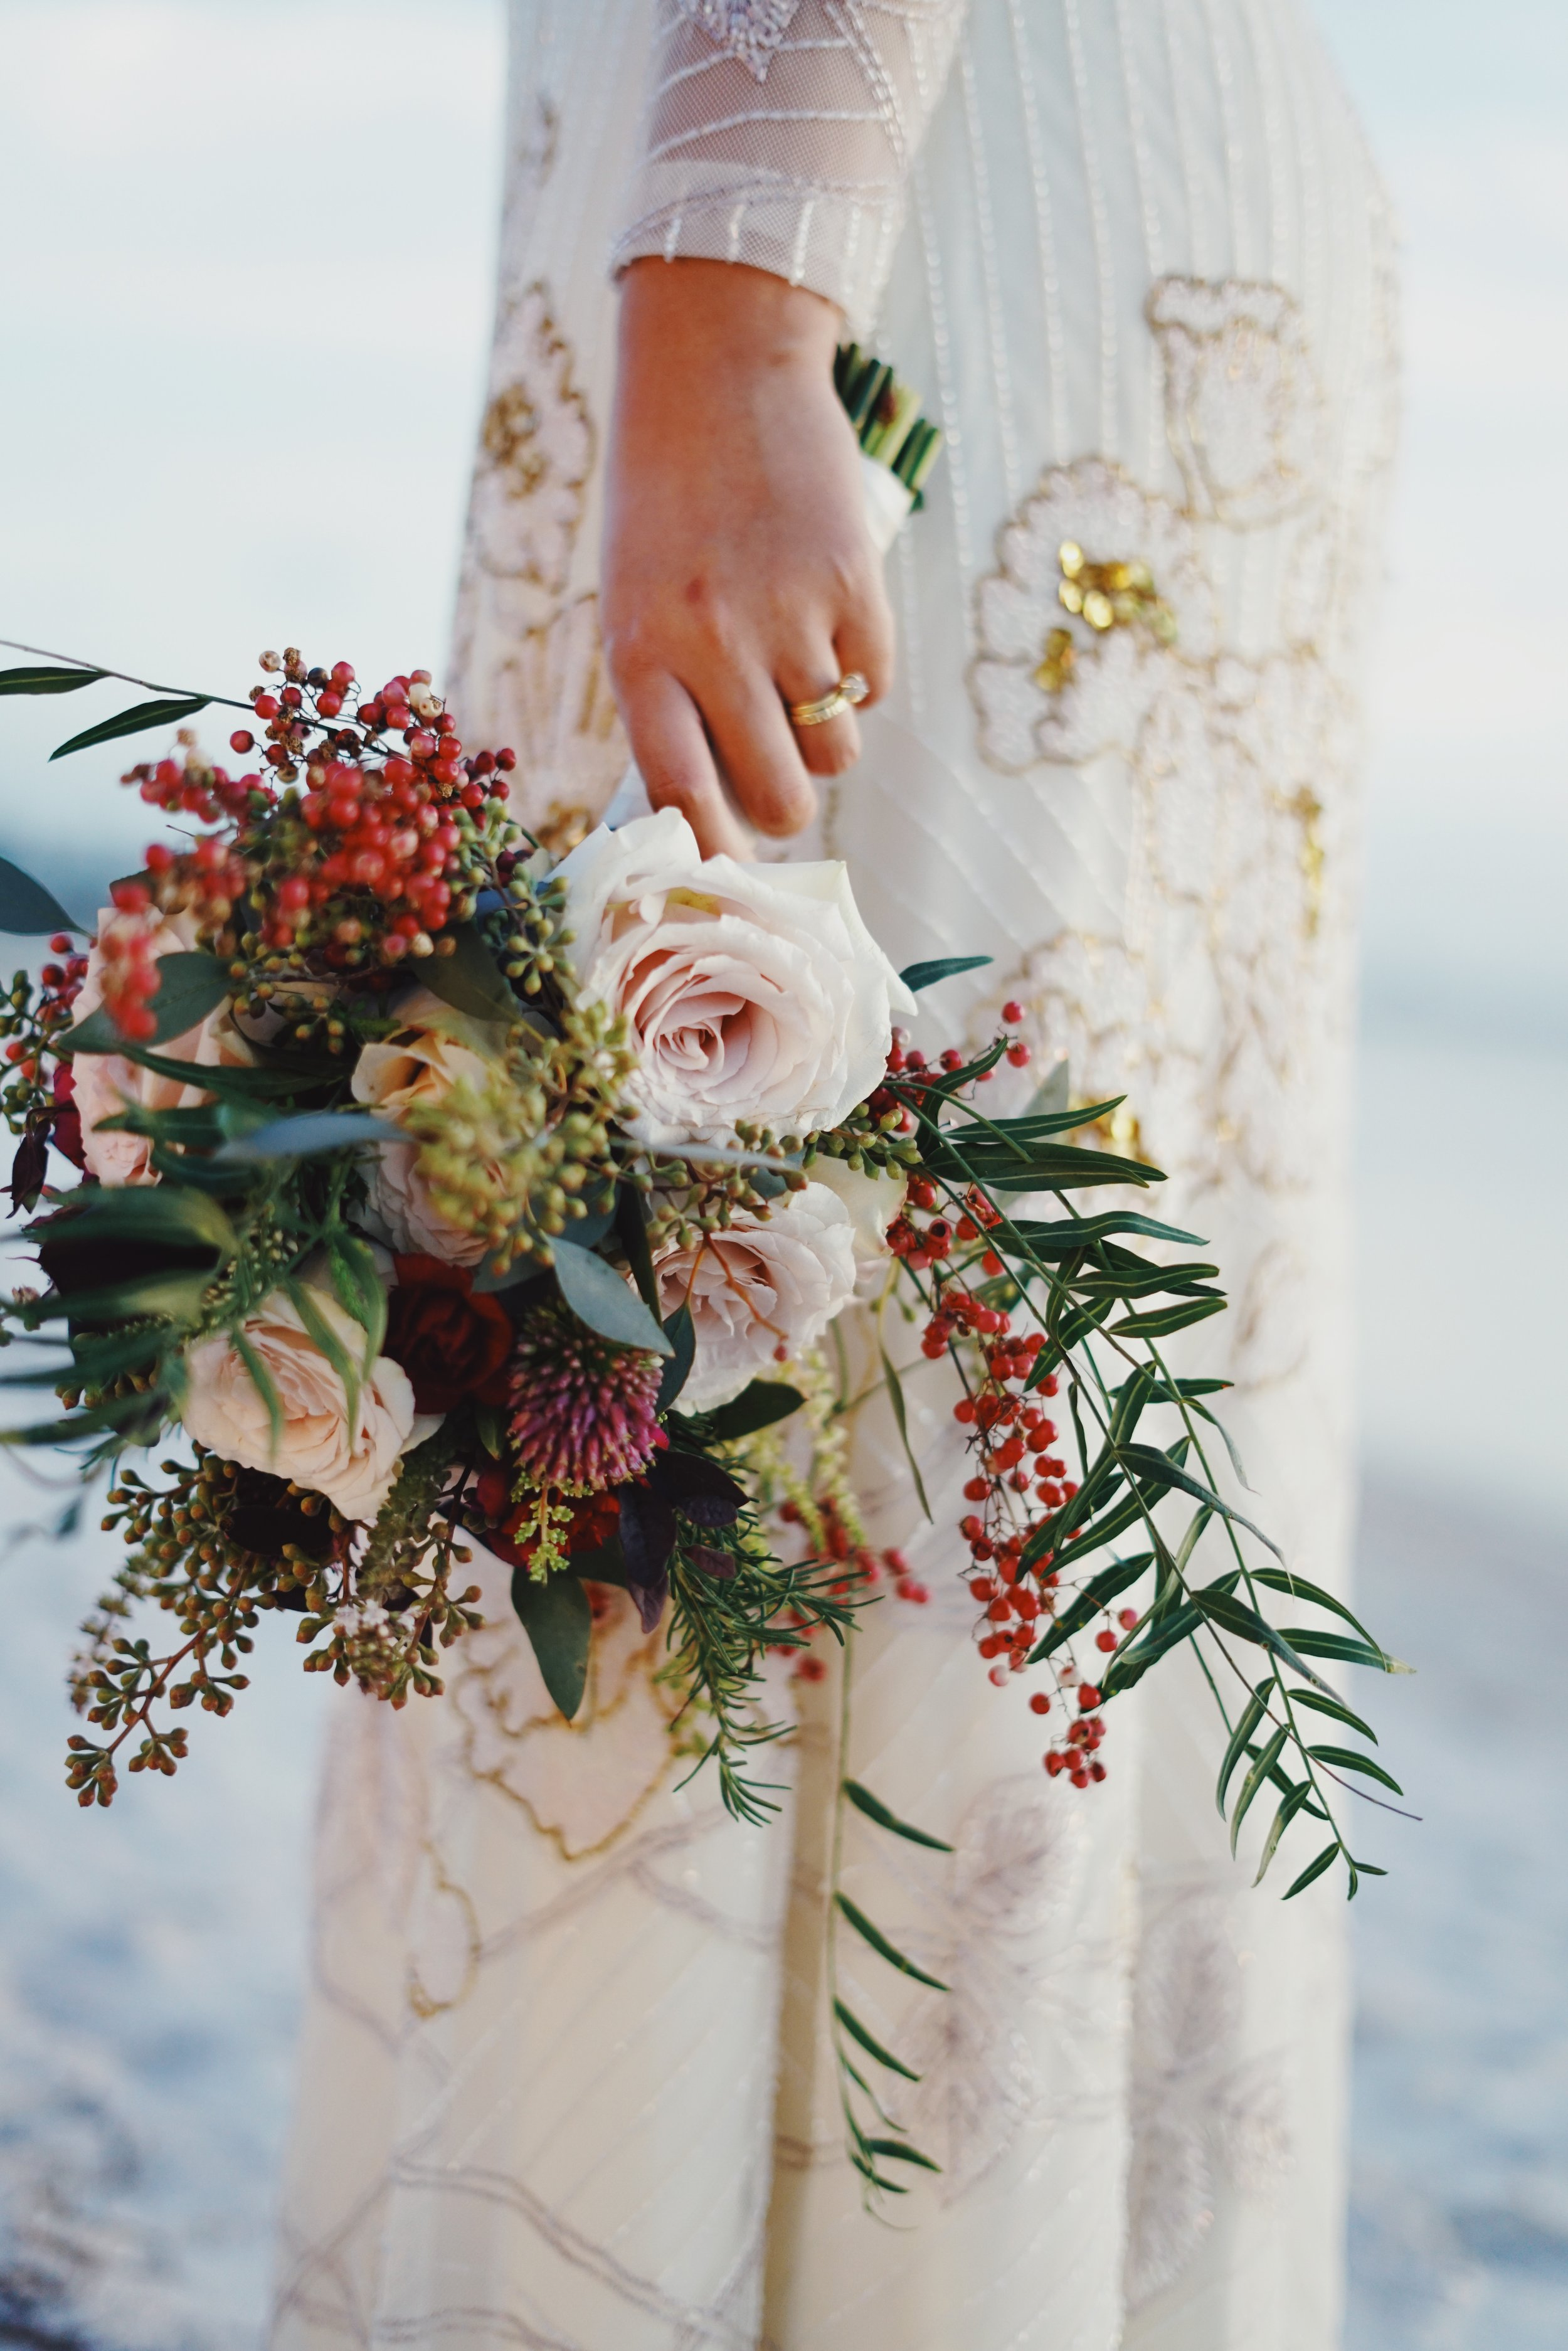 Check out these flower Inspirations here!